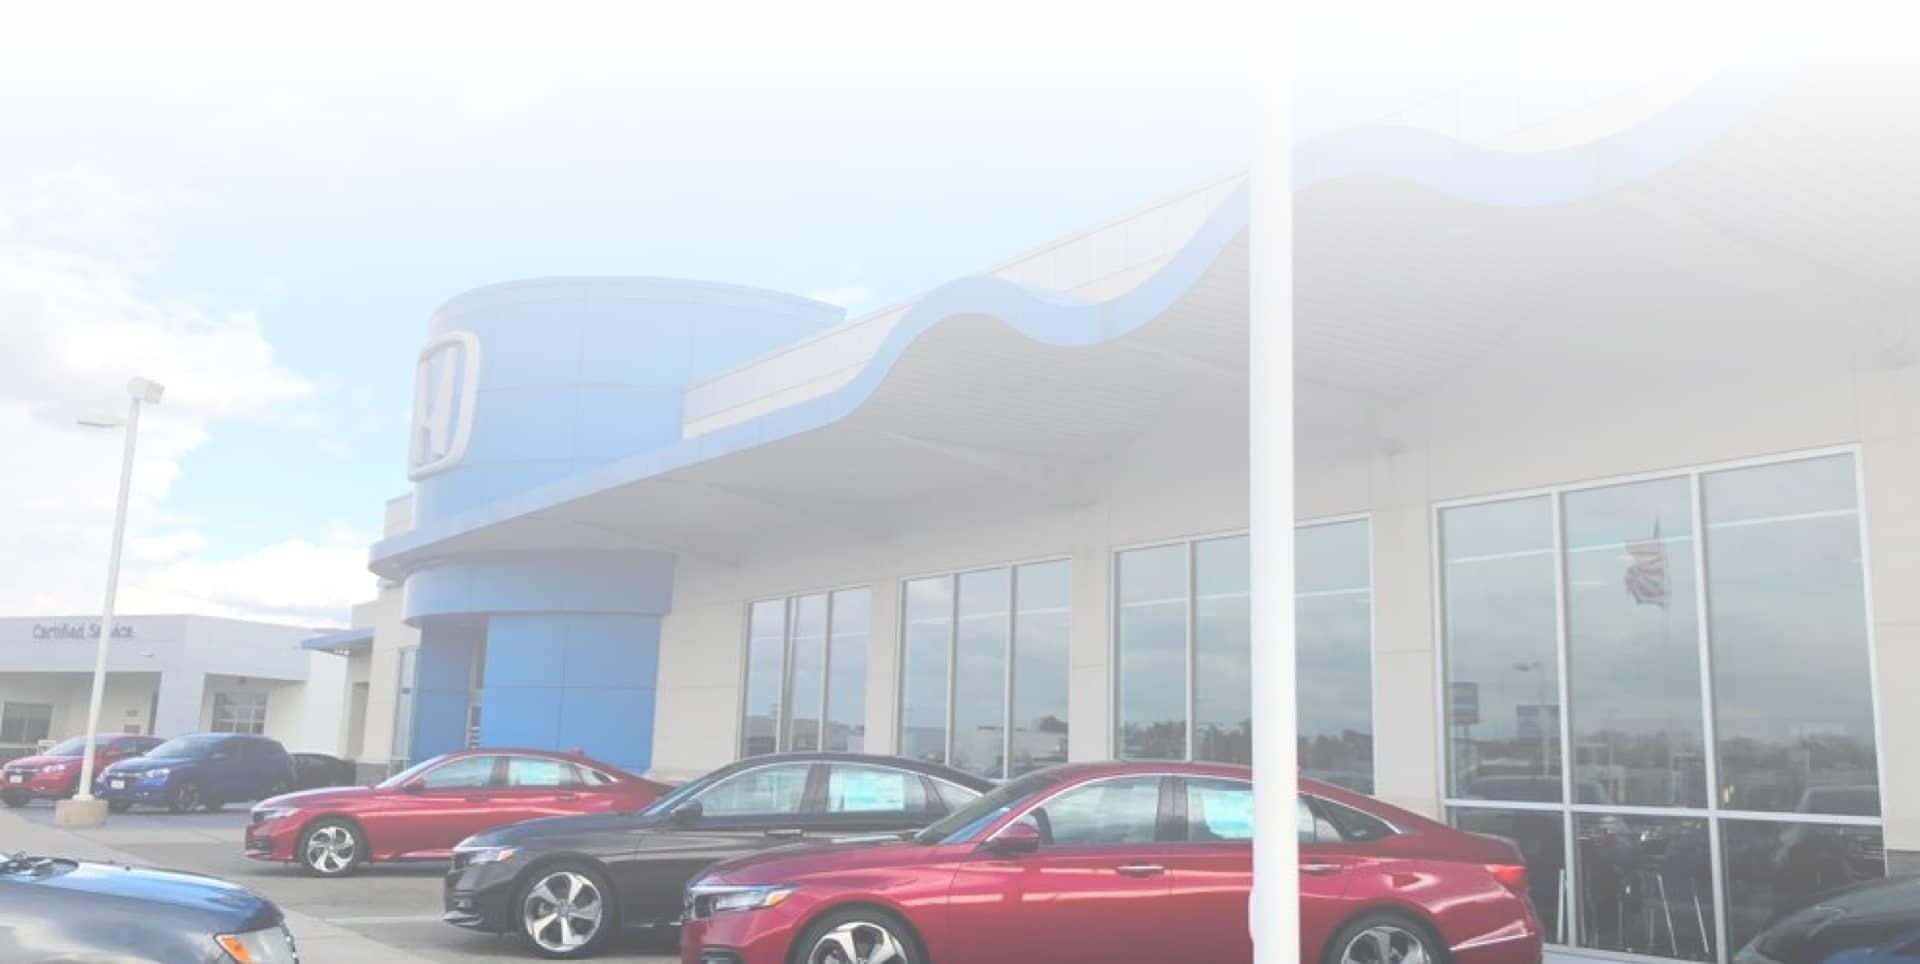 Honda of turnersville dealership